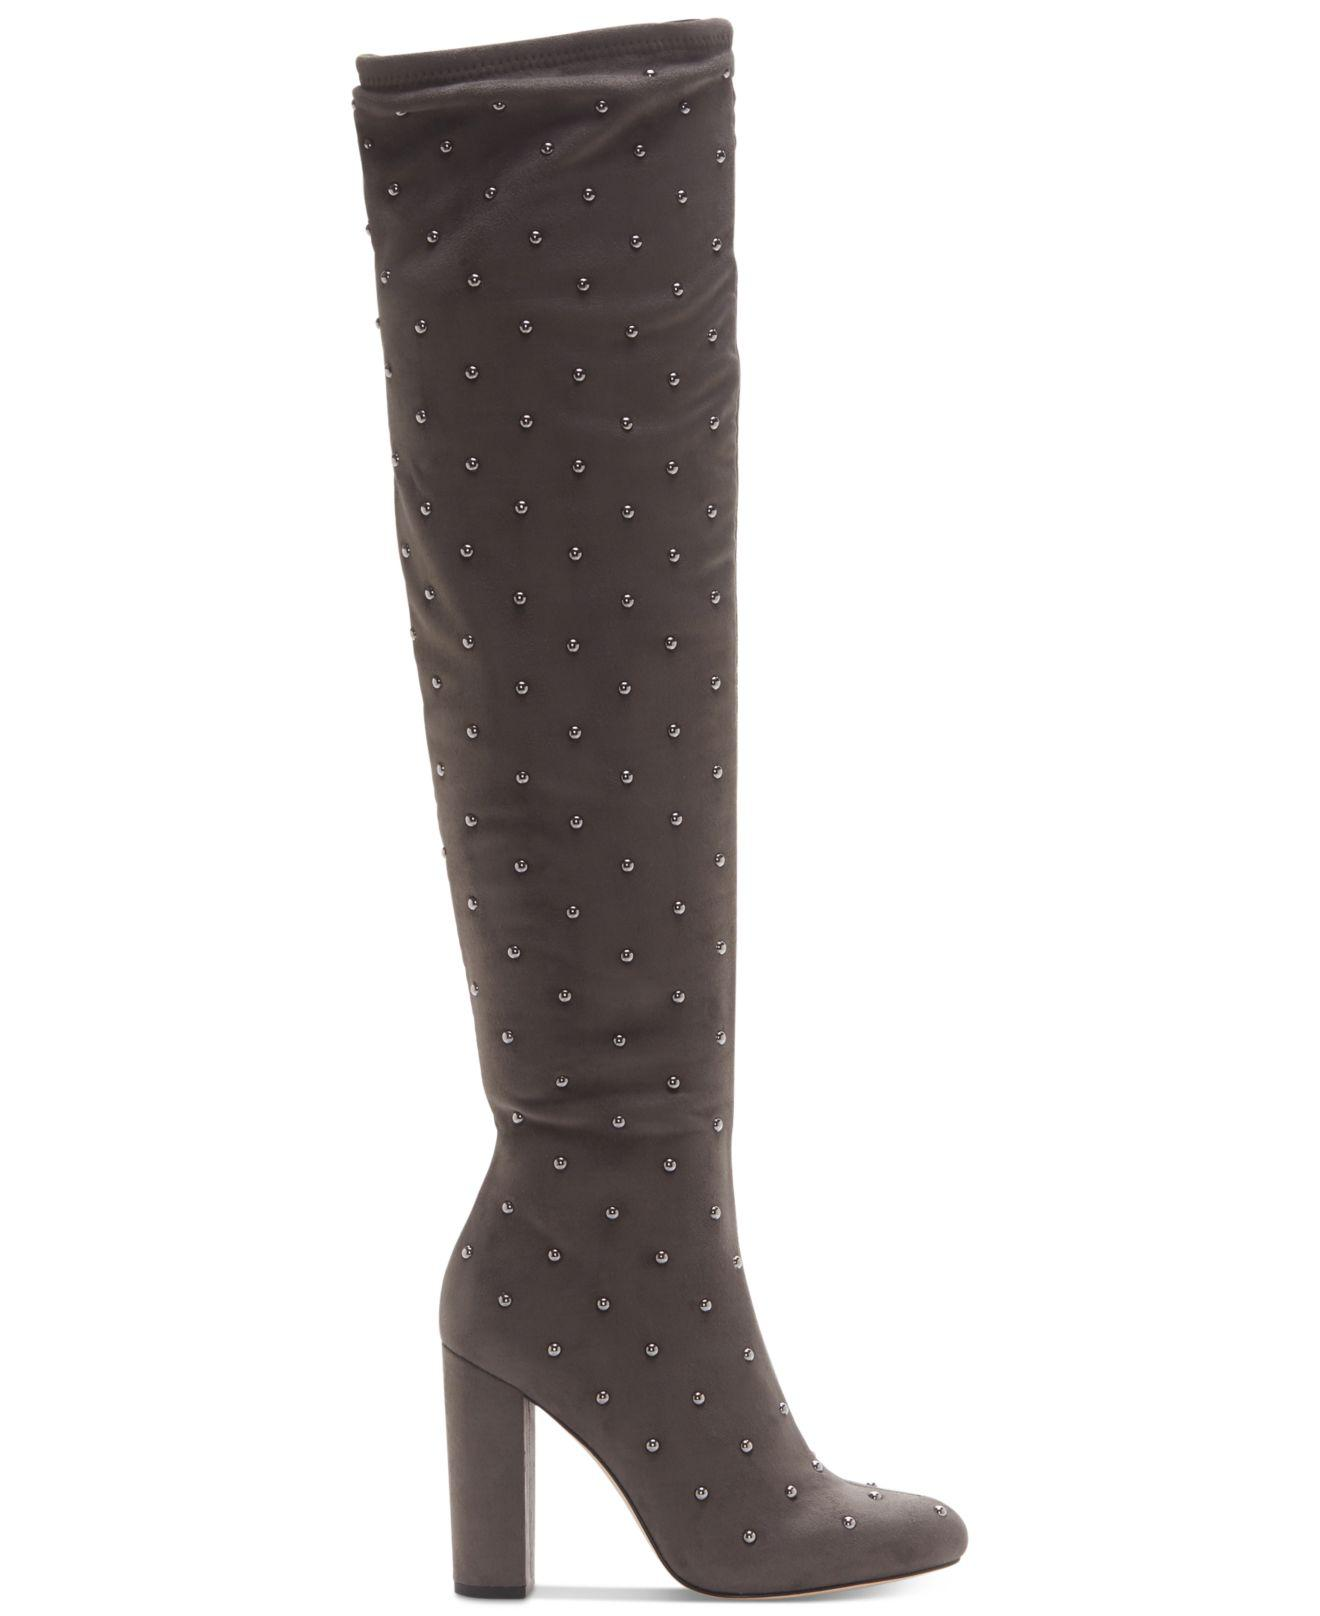 d3172ce9cd0 Lyst - Jessica Simpson Bressy Studded Over-the-knee Boots in Gray